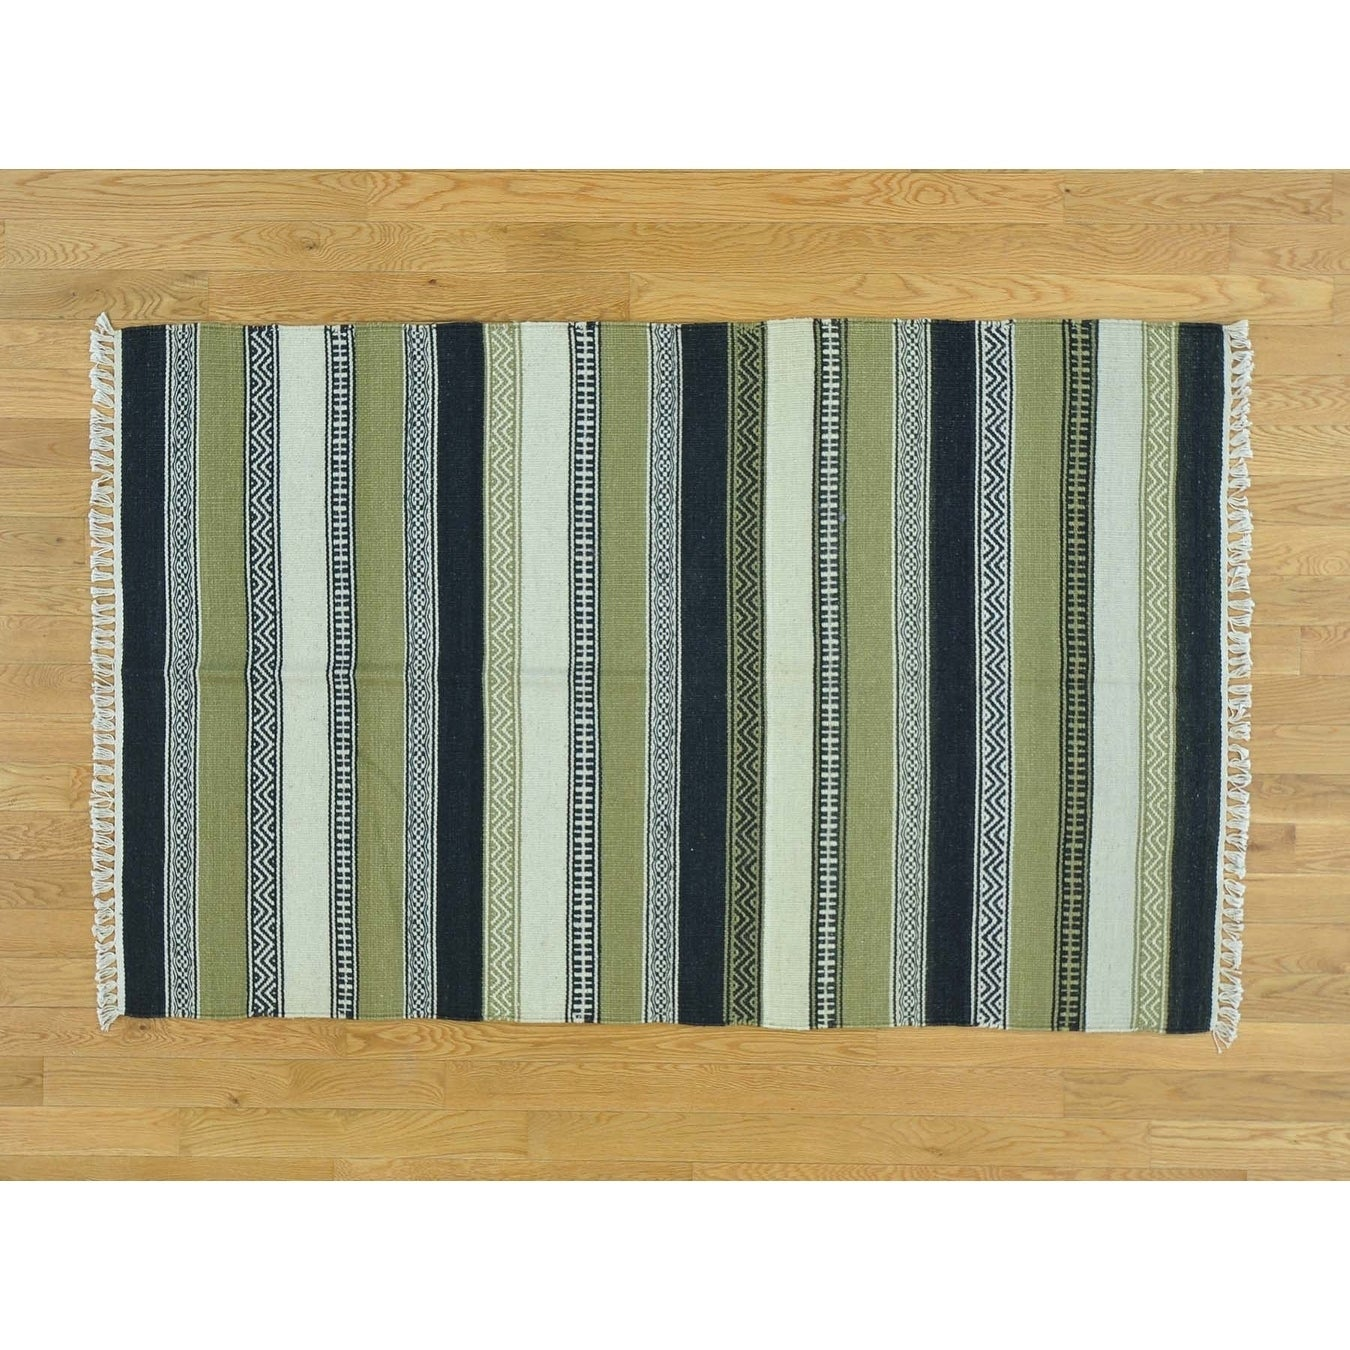 Hand Knotted Multicolored Flat Weave with Wool Oriental Rug - 310 x 61